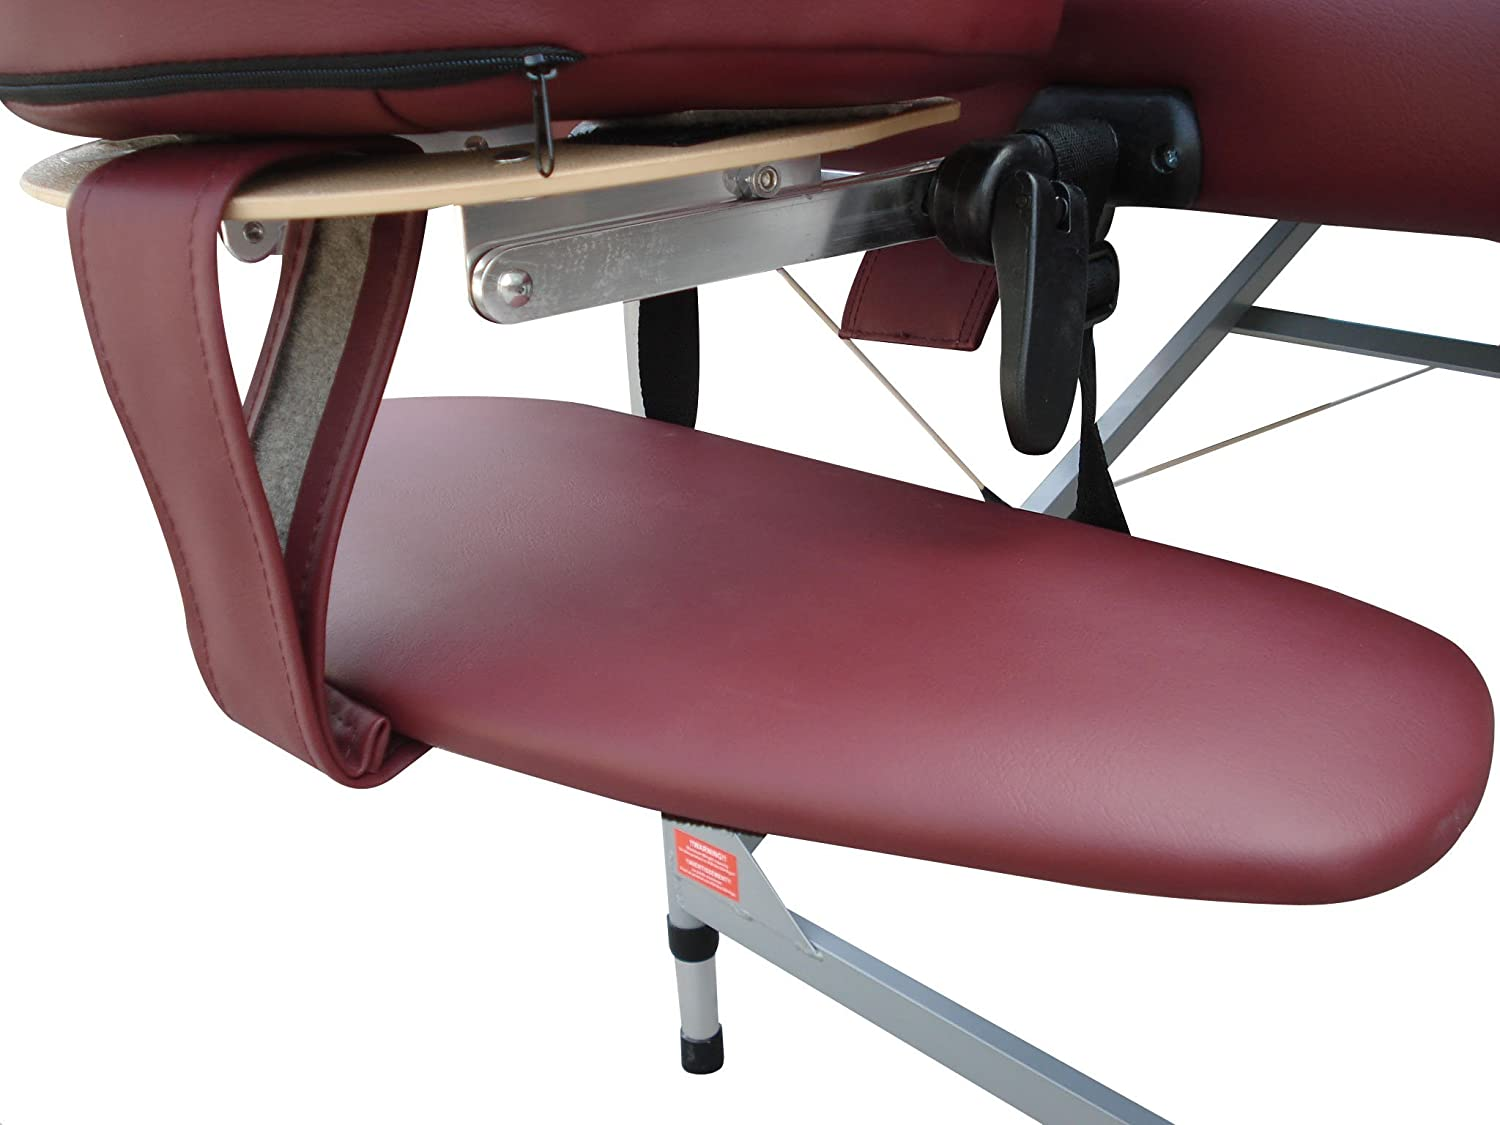 Therapist's Choice® Hanging Arm Rest for massage tables (Agate Blue) Clinical Health Services Inc.